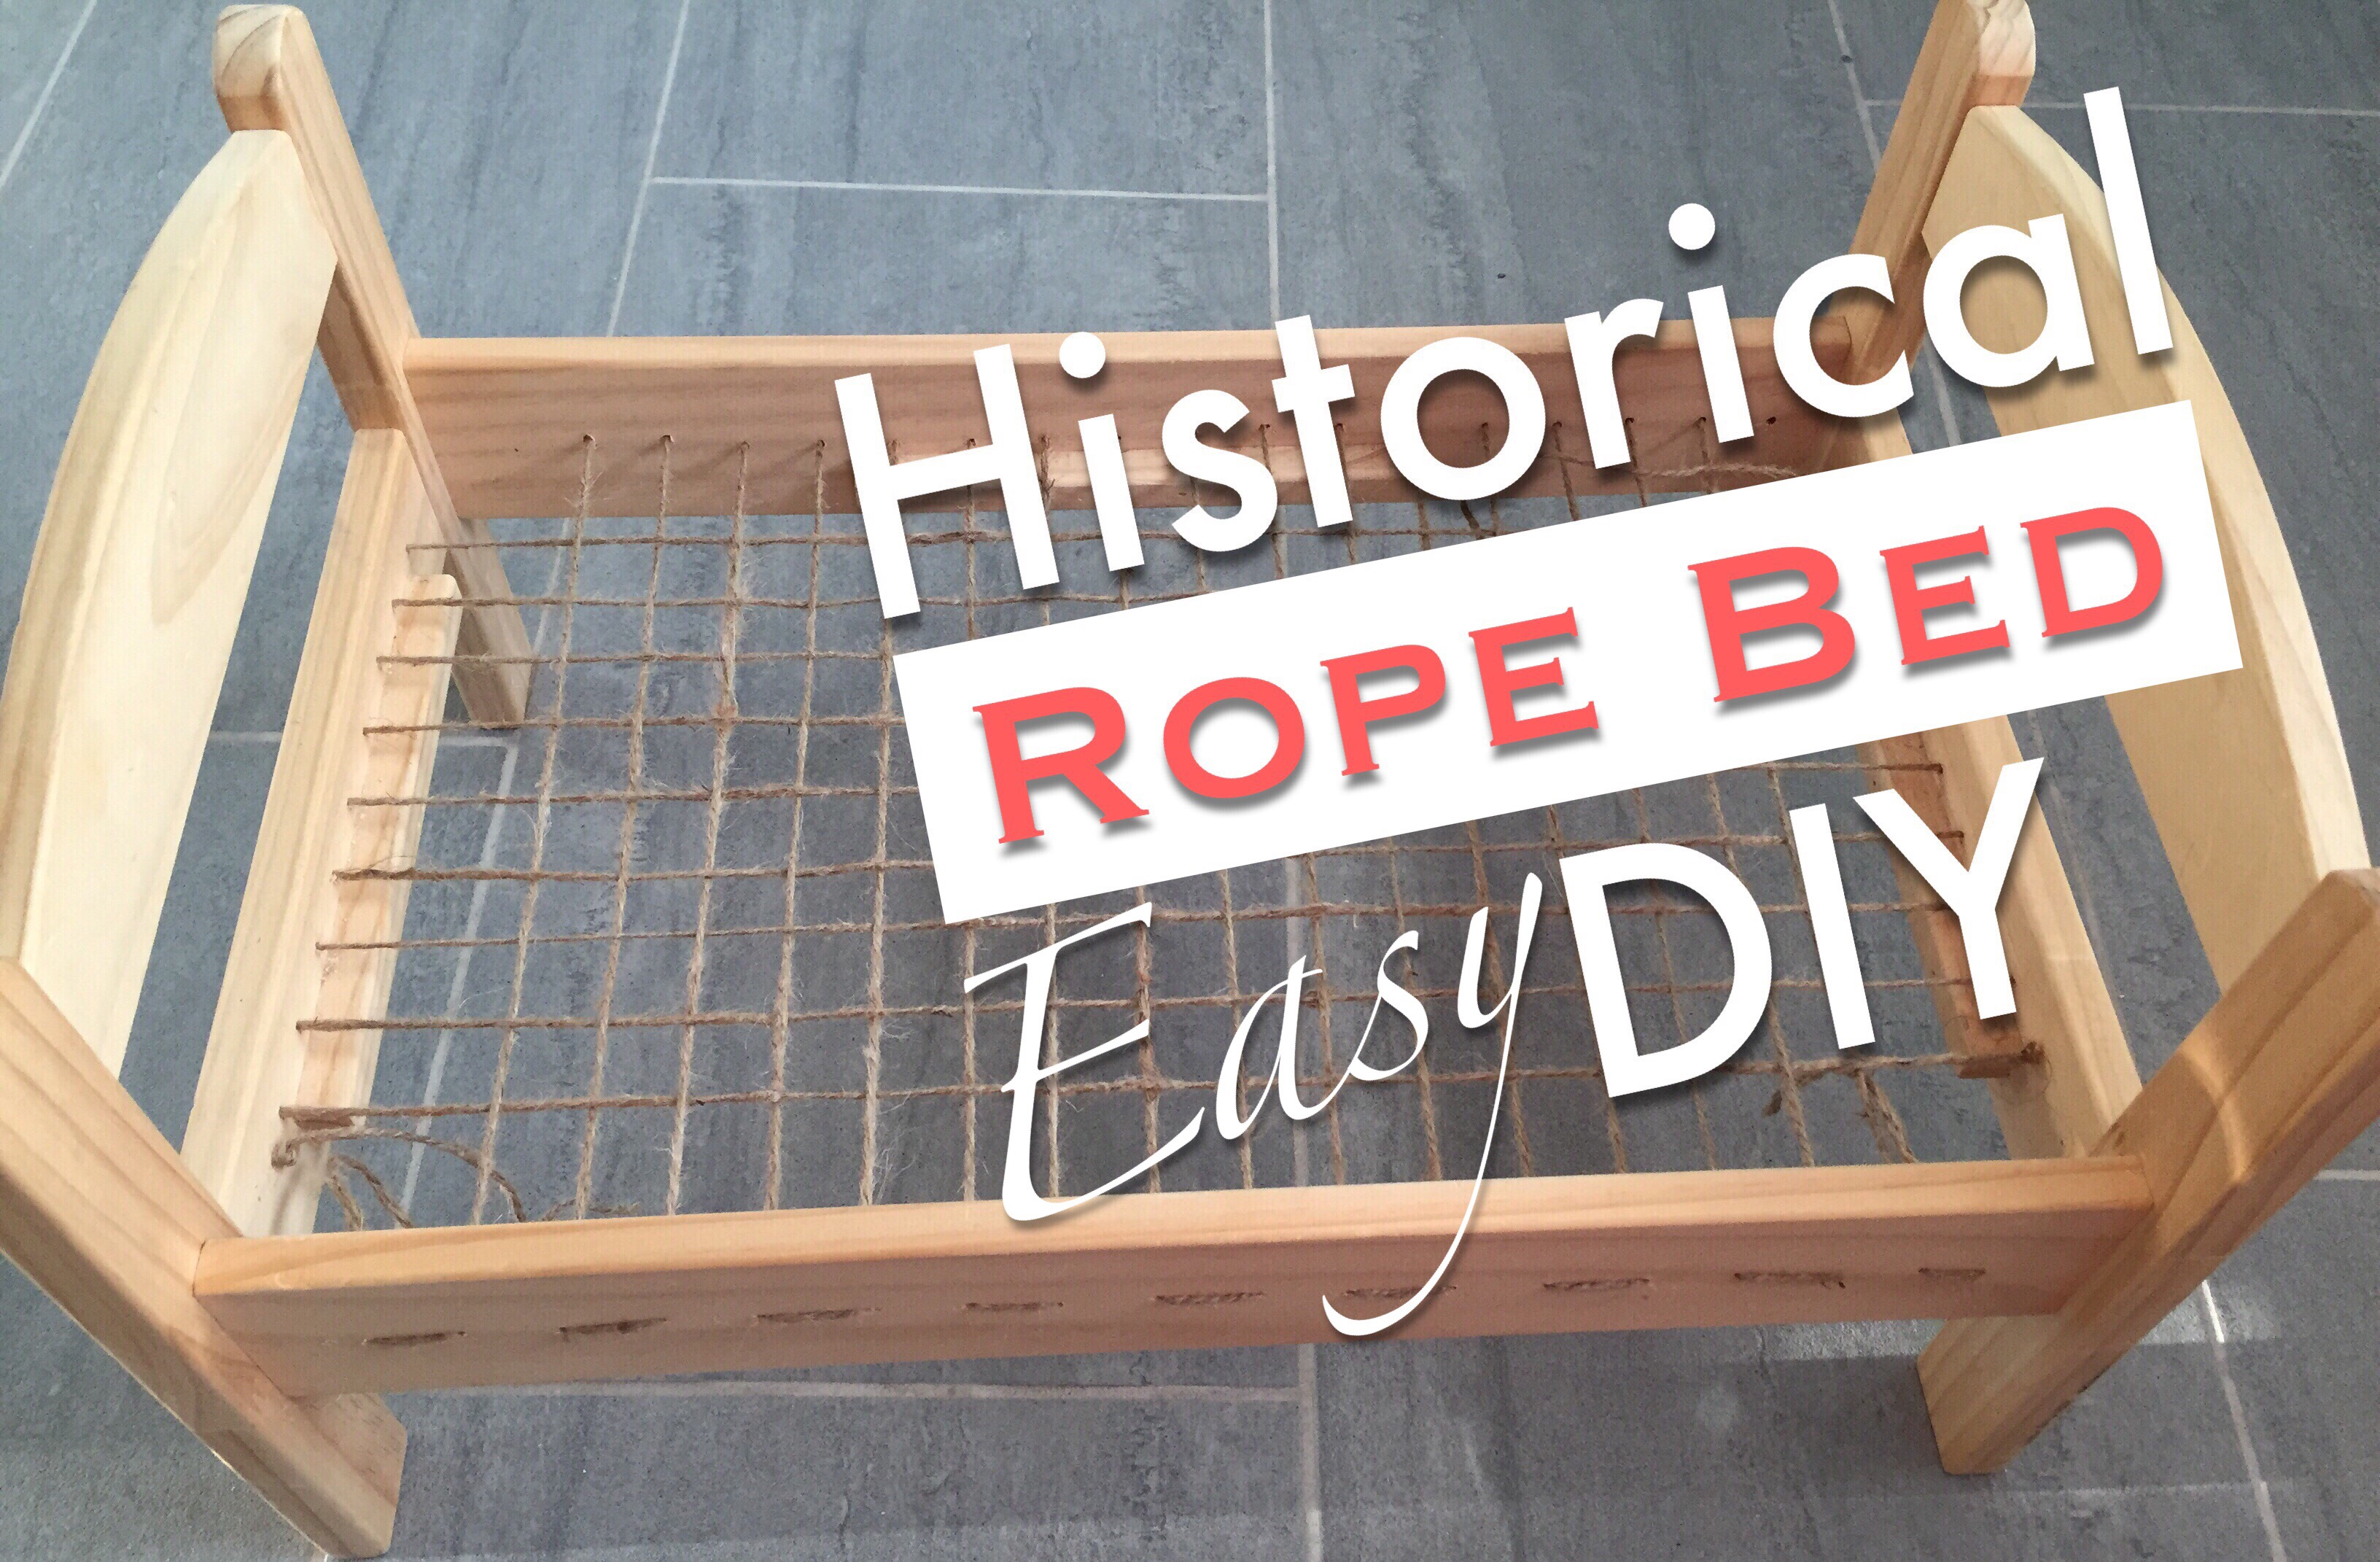 How To Make A Historical Rope Bed | Tutorial